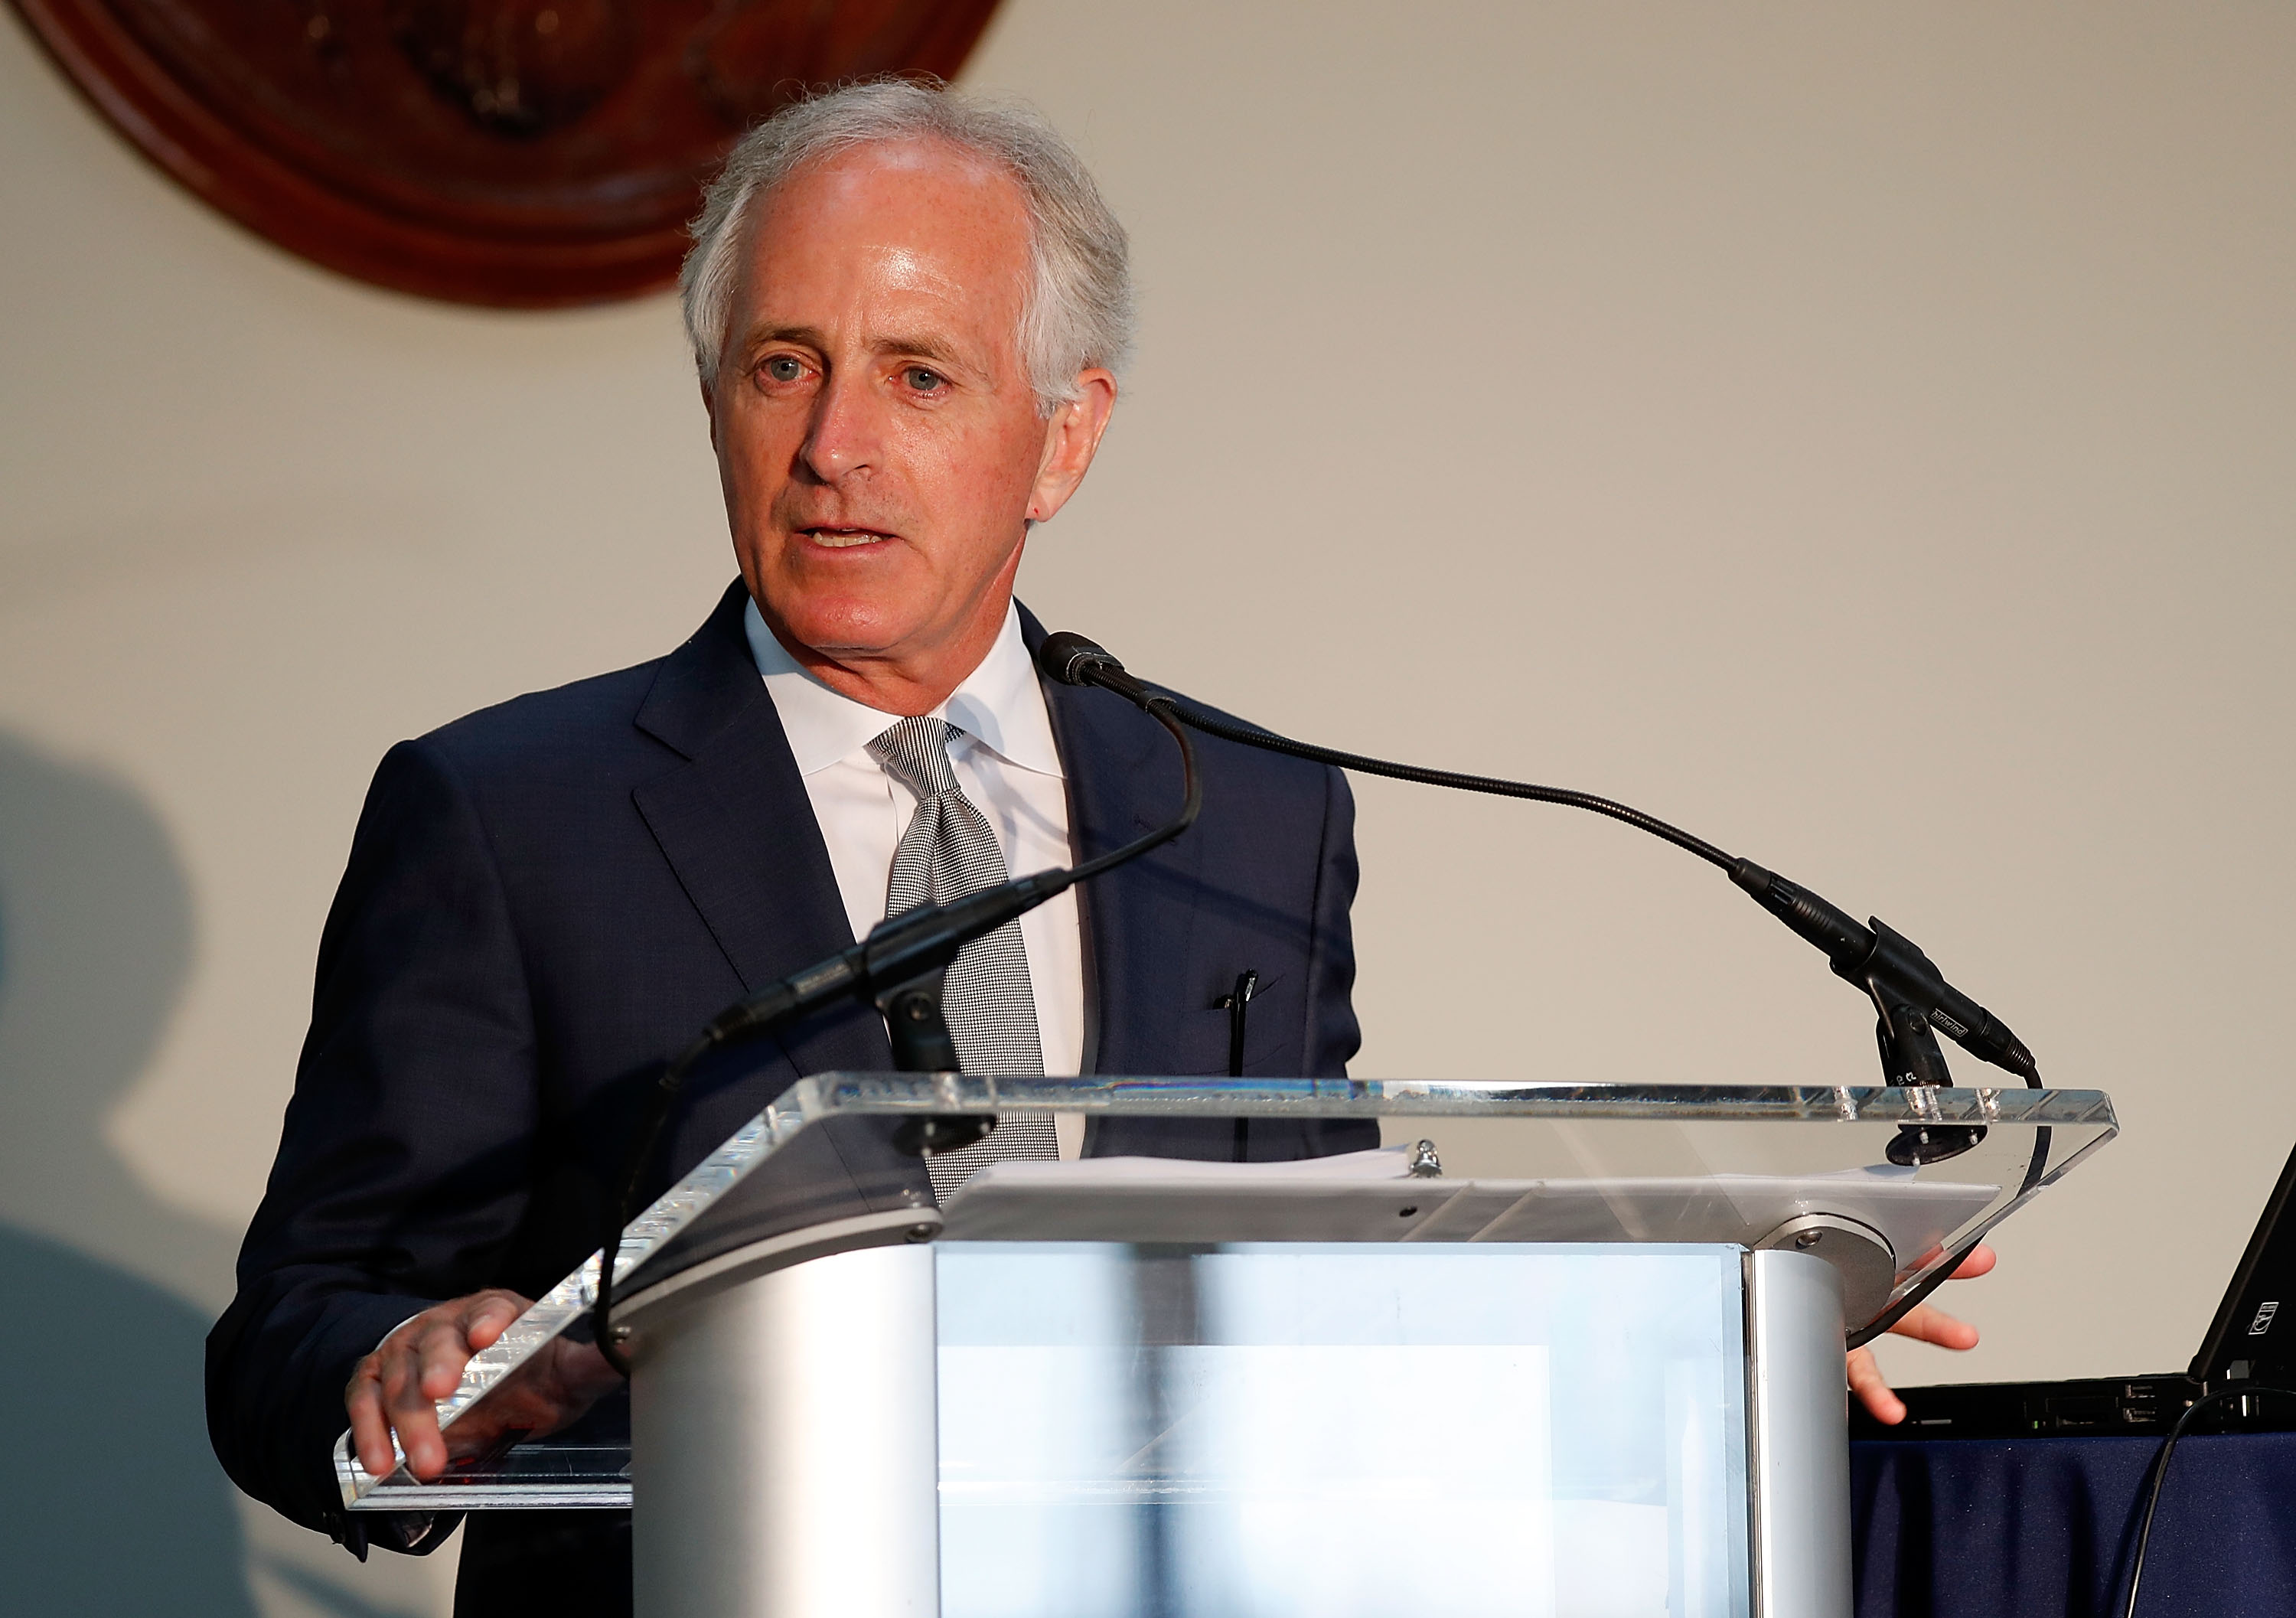 Senator Bob Corker Said He Hasn't Read The Tax Bill, Denies Changing His Vote In Exchange For Personal Tax Breaks